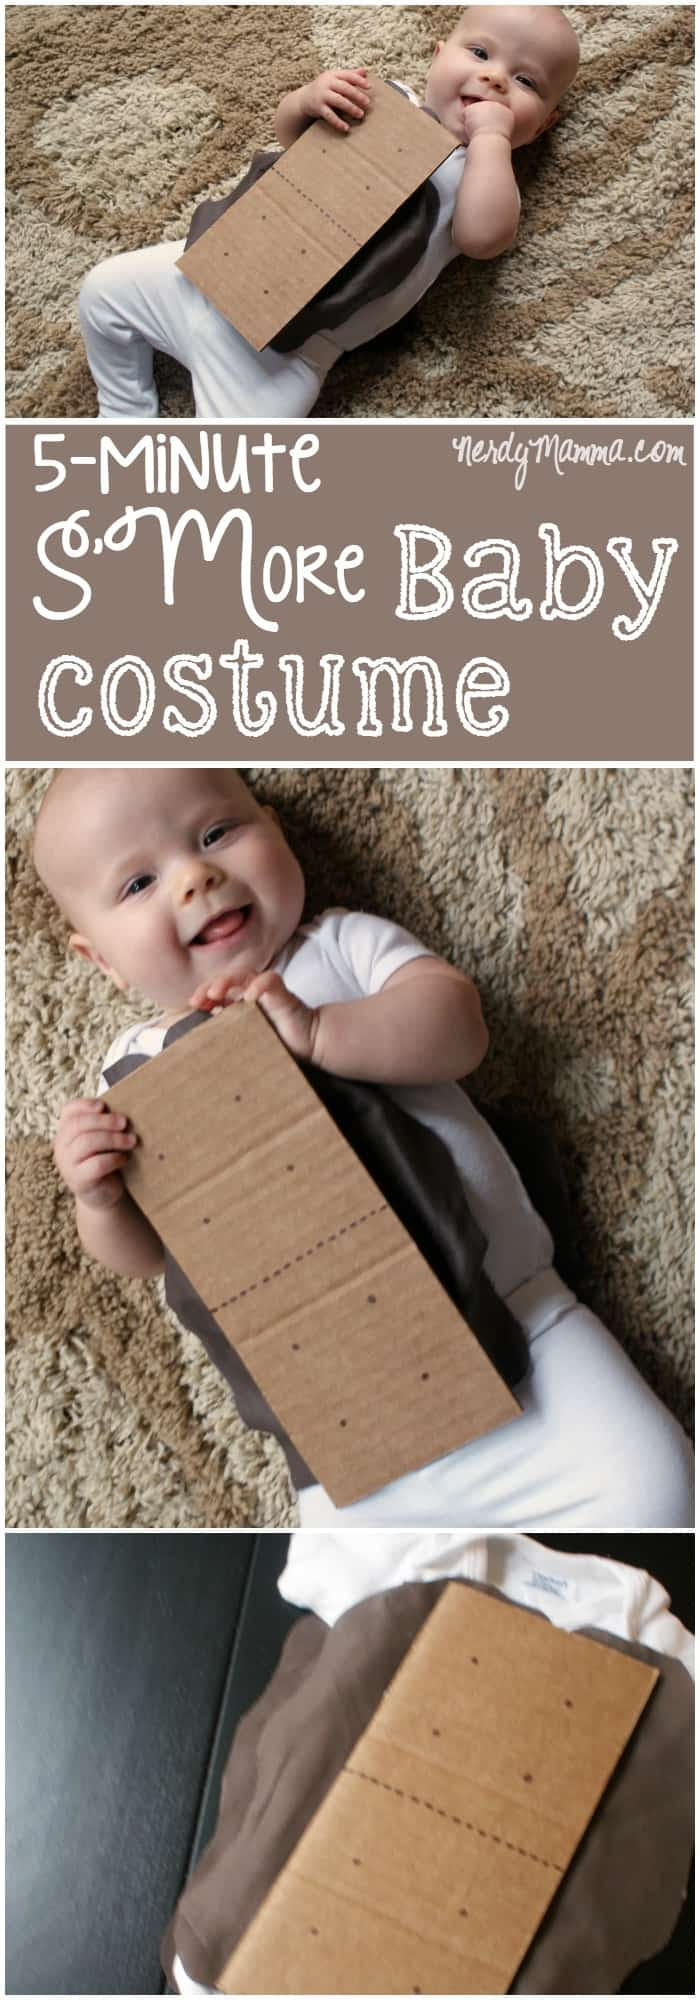 This funny DIY S'More Baby Costume is so cute. AND SO EASY! I love this. Cracks me up! And it only took like 5 minutes to make...